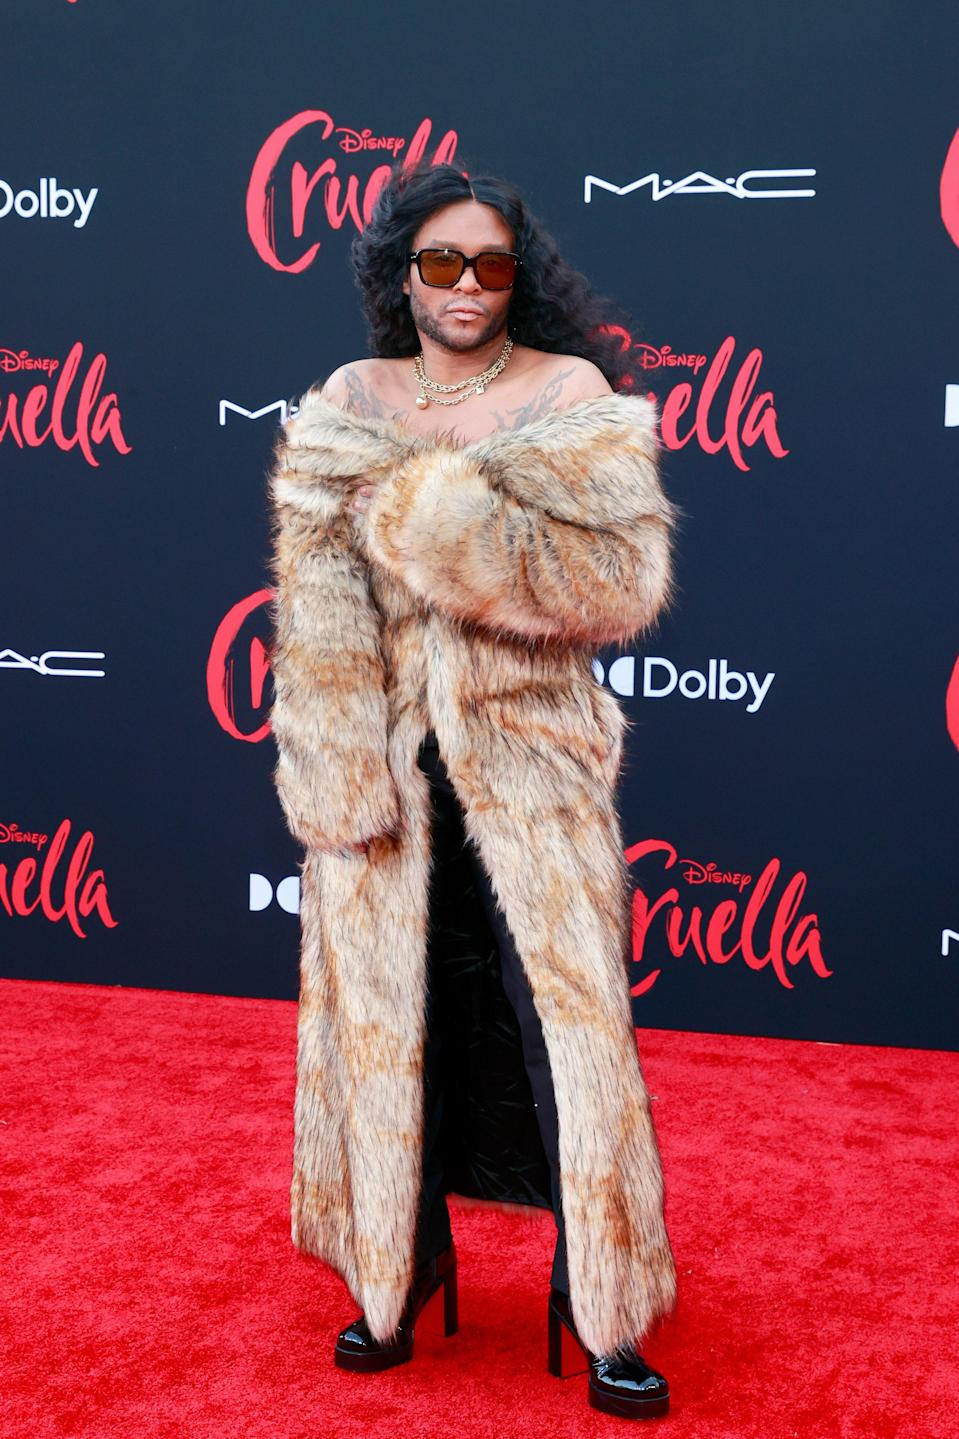 Stylist Law Roach came dressed to the nines, wearing a very Cruella long fur coat as a dress and sky-high platform heels.